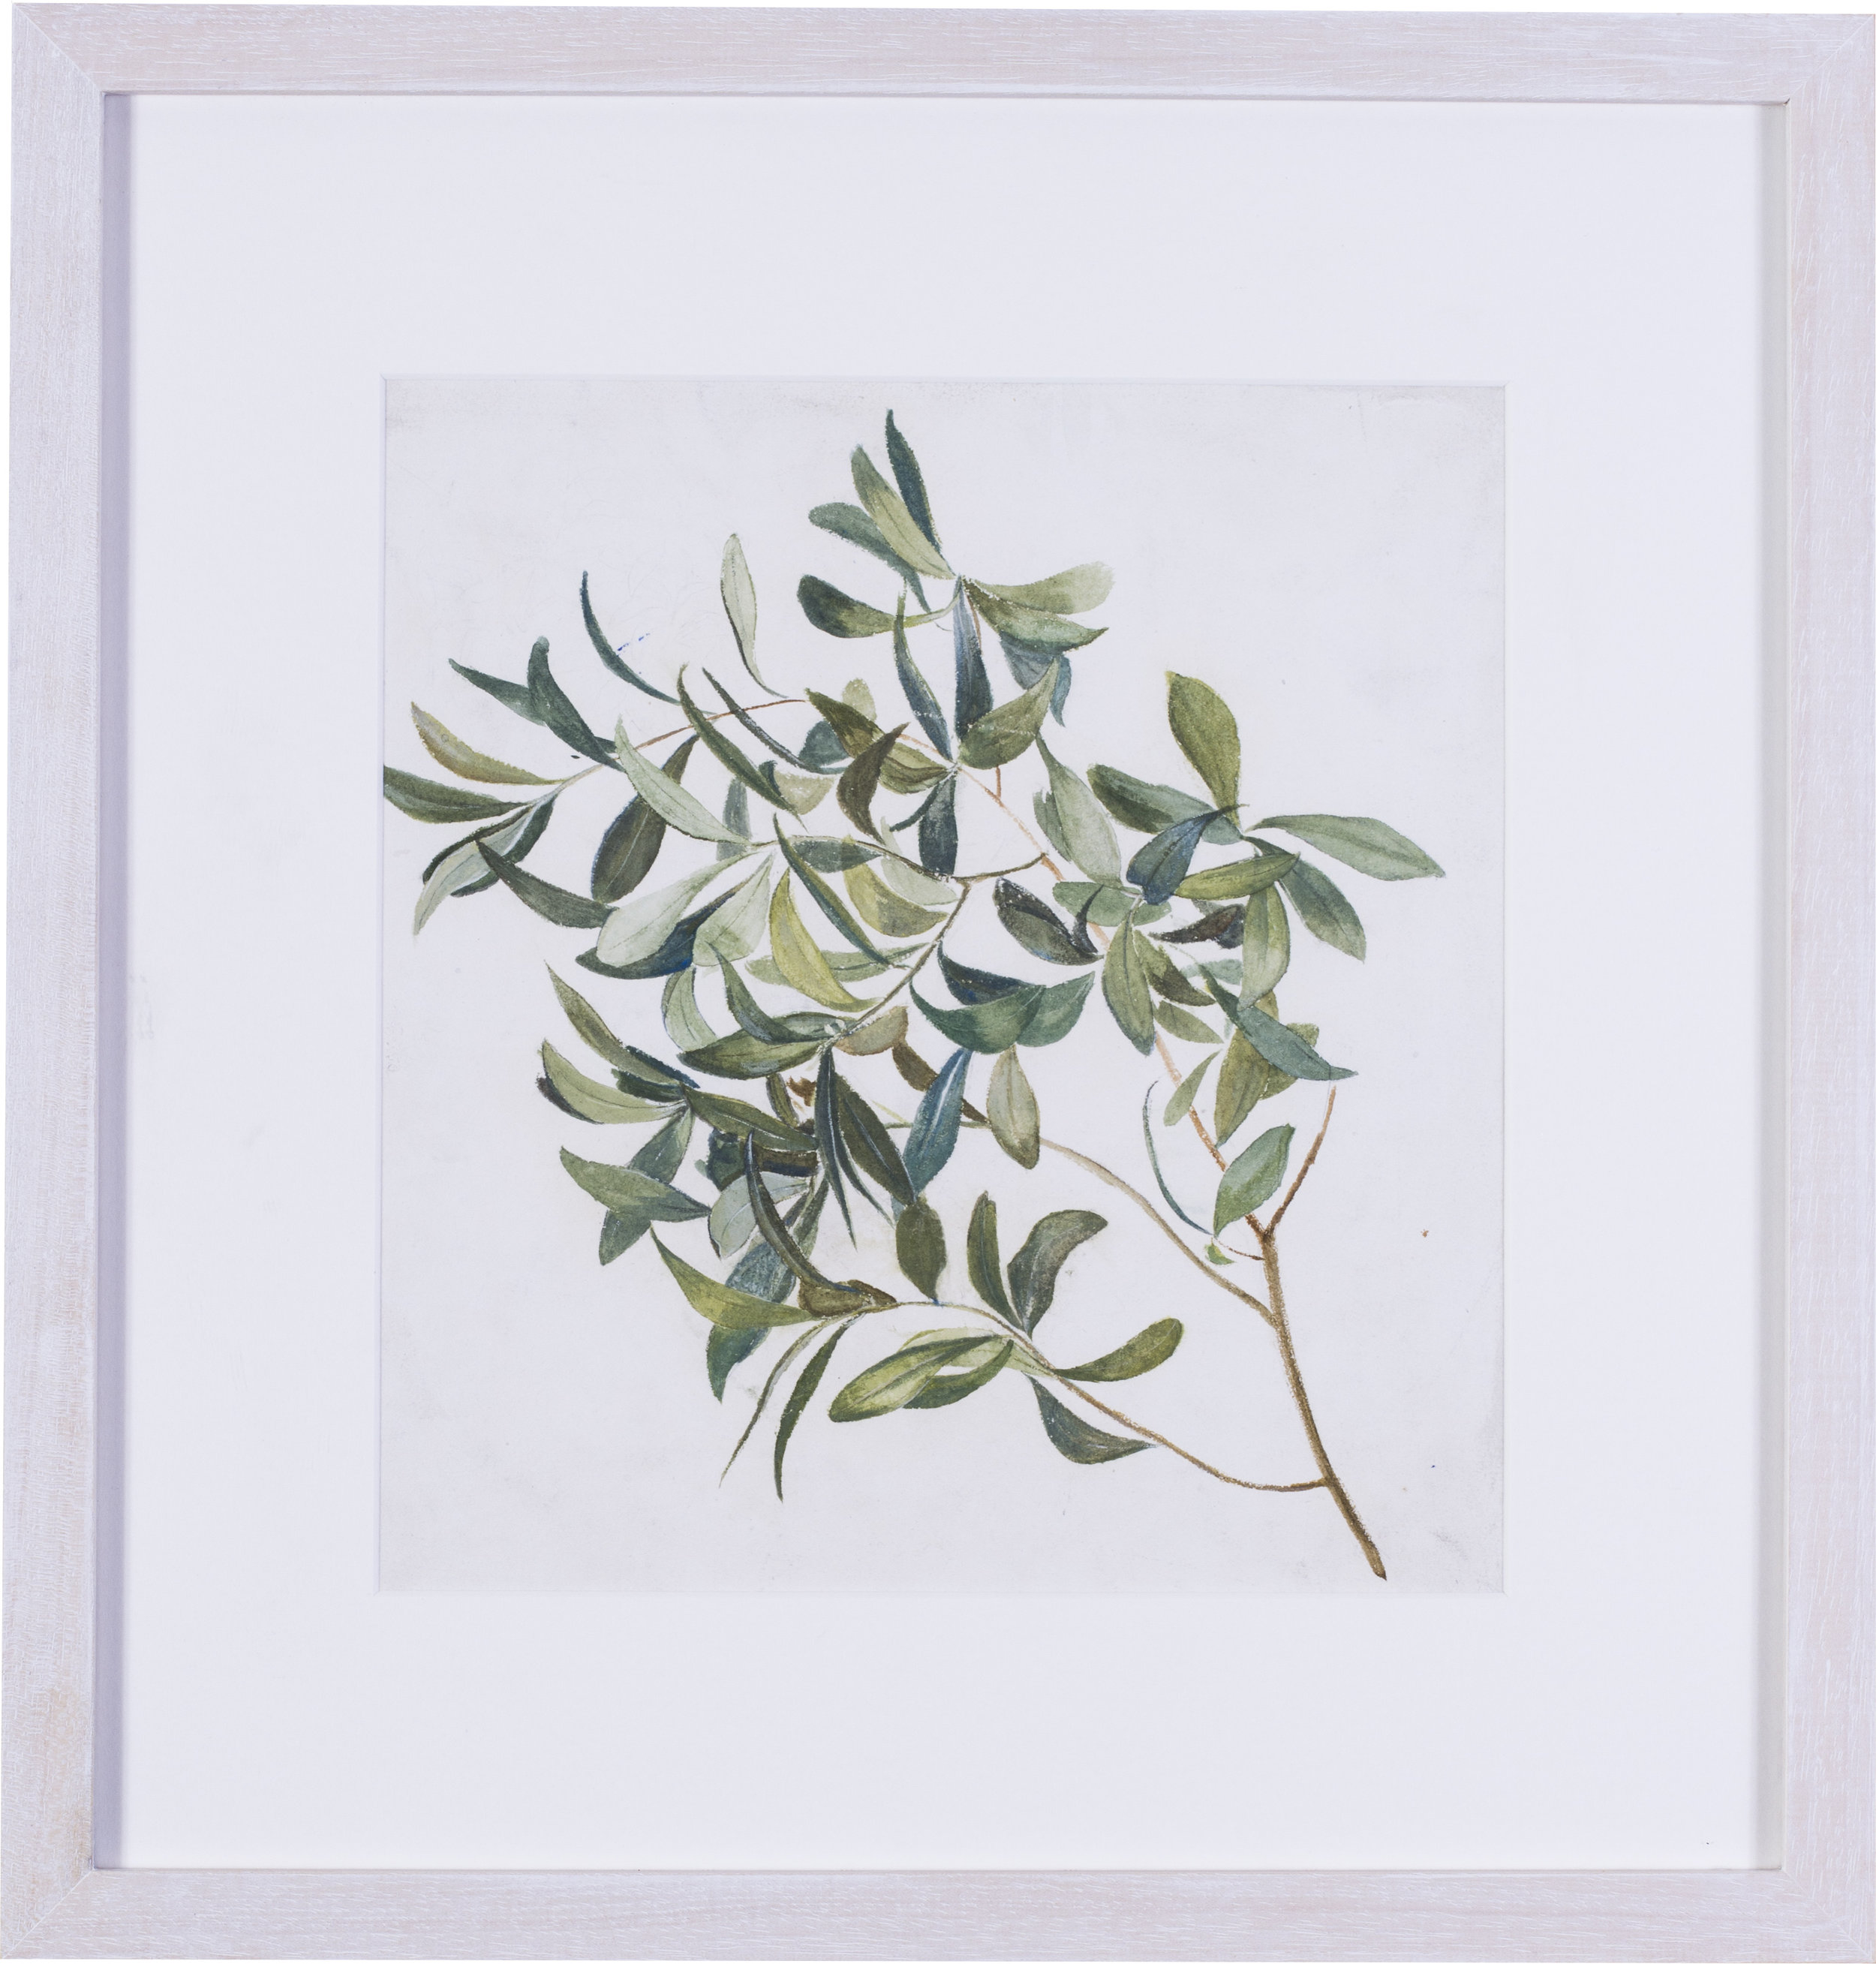 Large olive branch    watercolour on paper  11 x 10.1/4 in. (28 x 26 cm.)  Provenance: The Clayton-Stamm Collection.  Dominic Winter, Cirencester, 8thNovember 2018, lot 464  SOLD